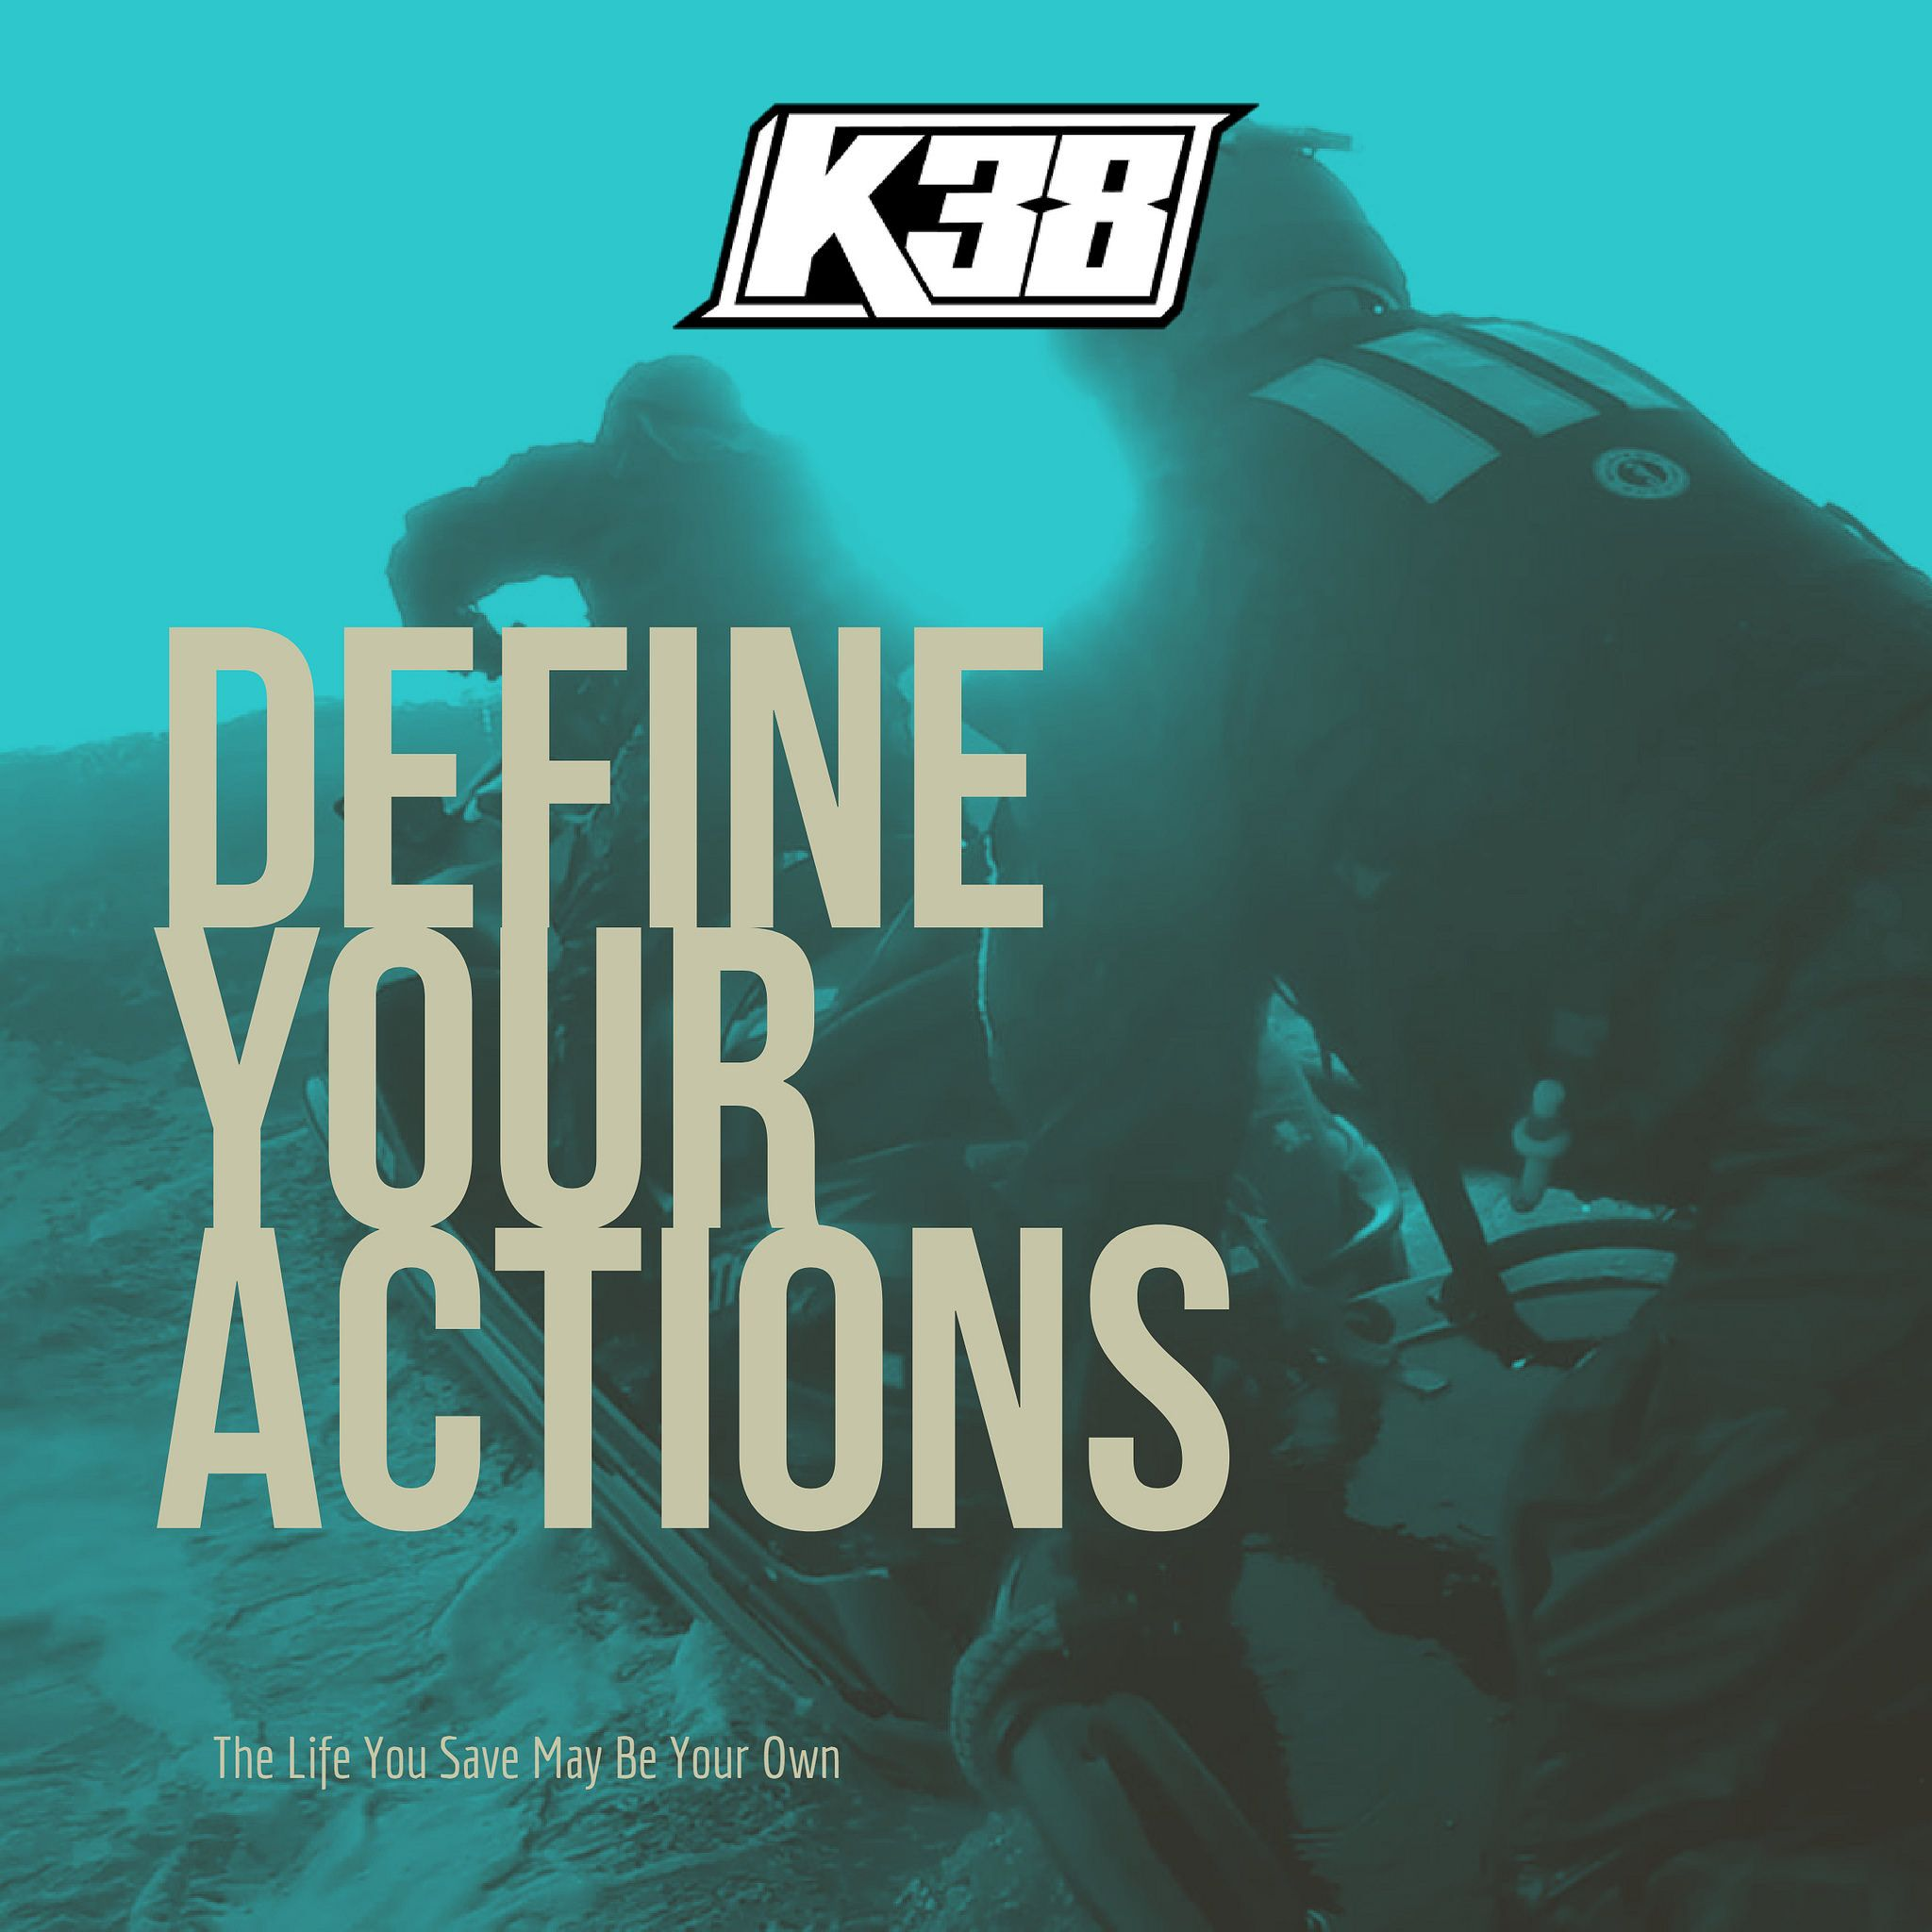 Define Your Actions Event safety, What is like, Training